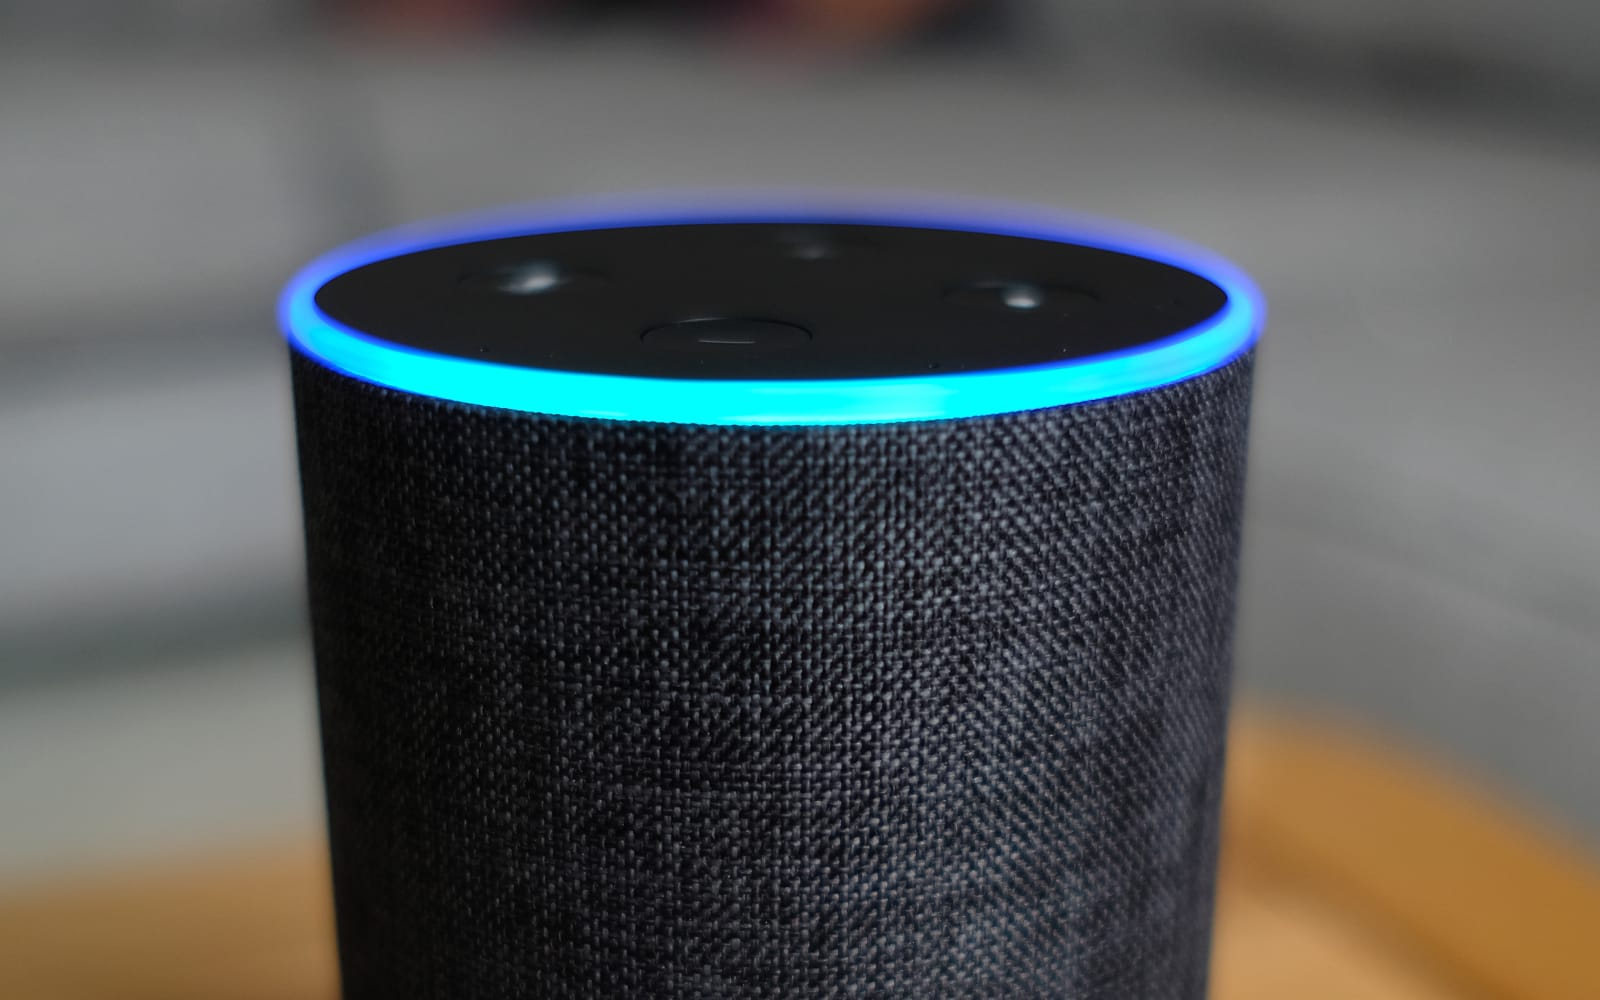 Amazon enlists 30 companies to improve how voice assistants work together